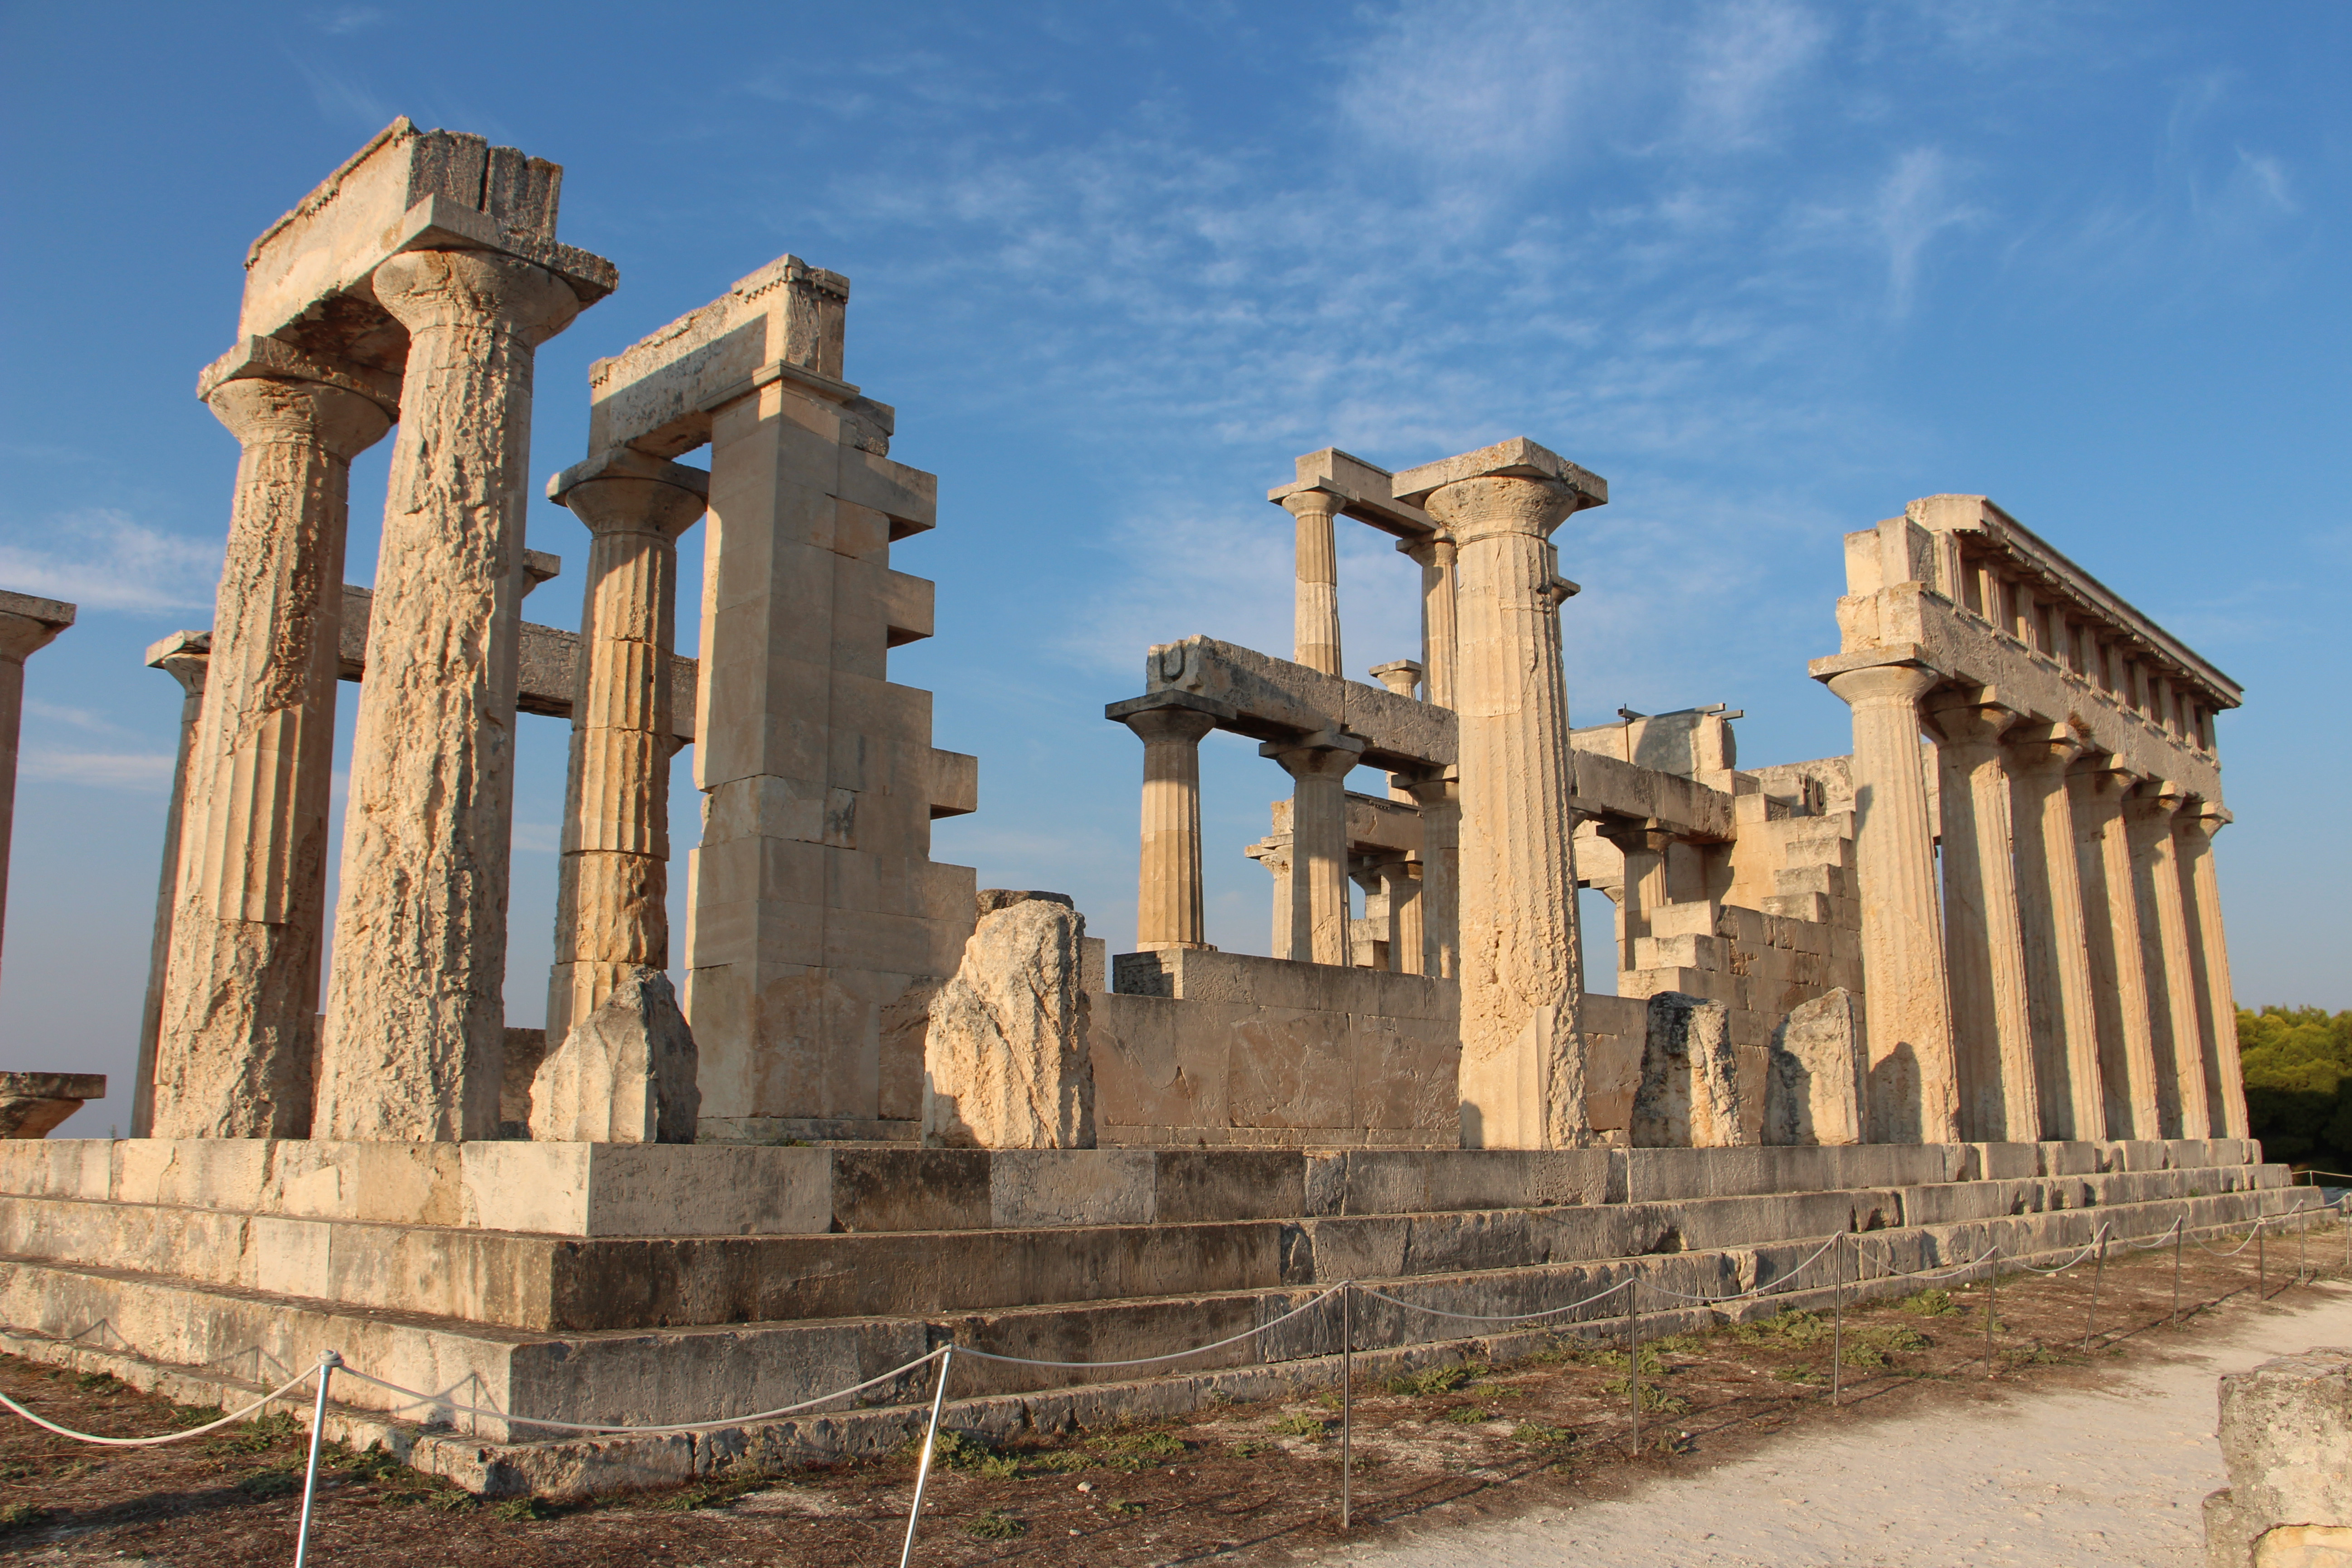 VISIT THE TEMPLE OF AFAIA IN AIGINA